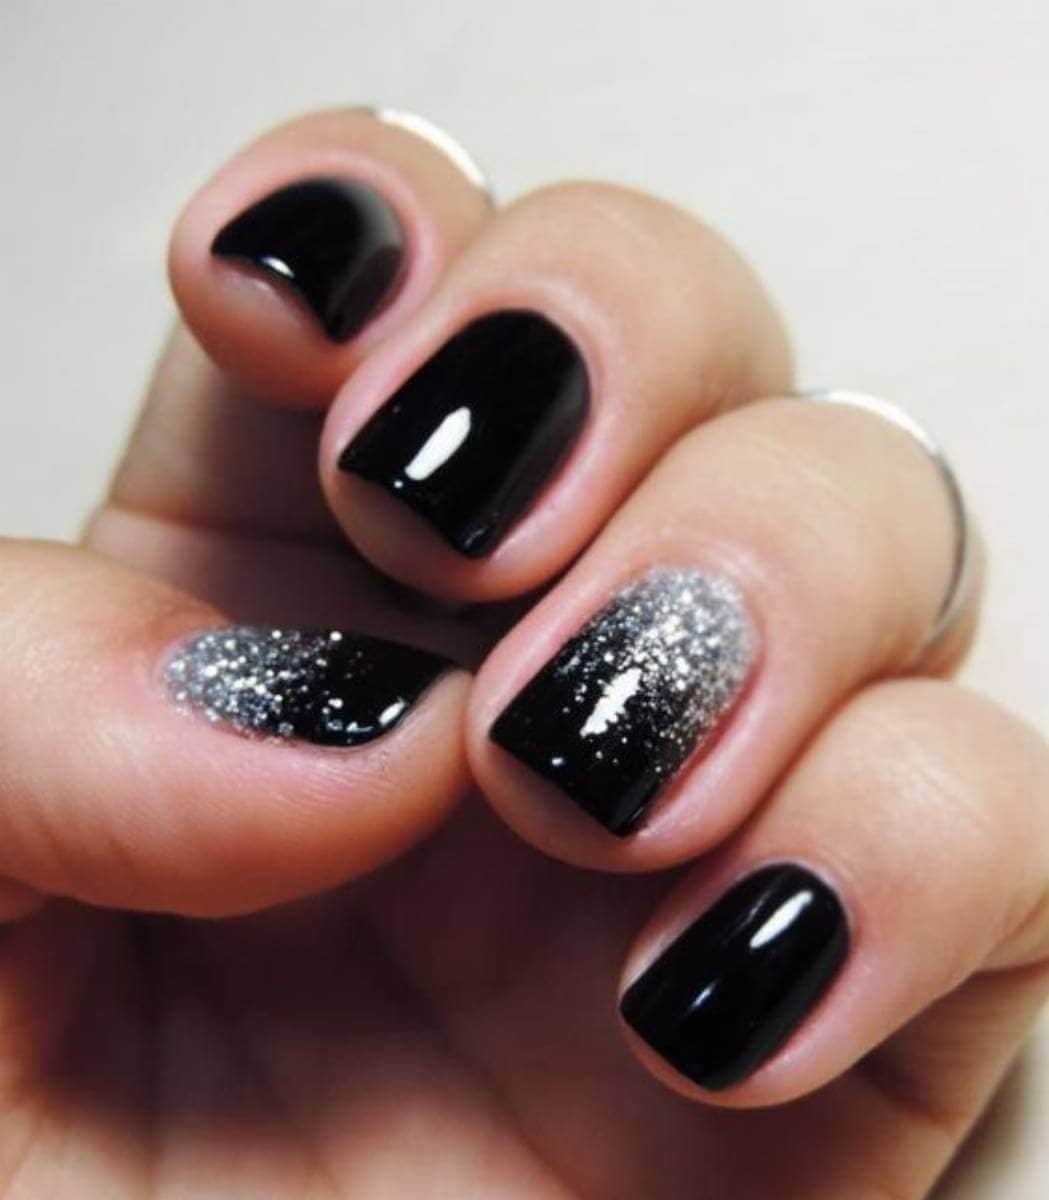 Old Hollywood glamor- silver glitter and black